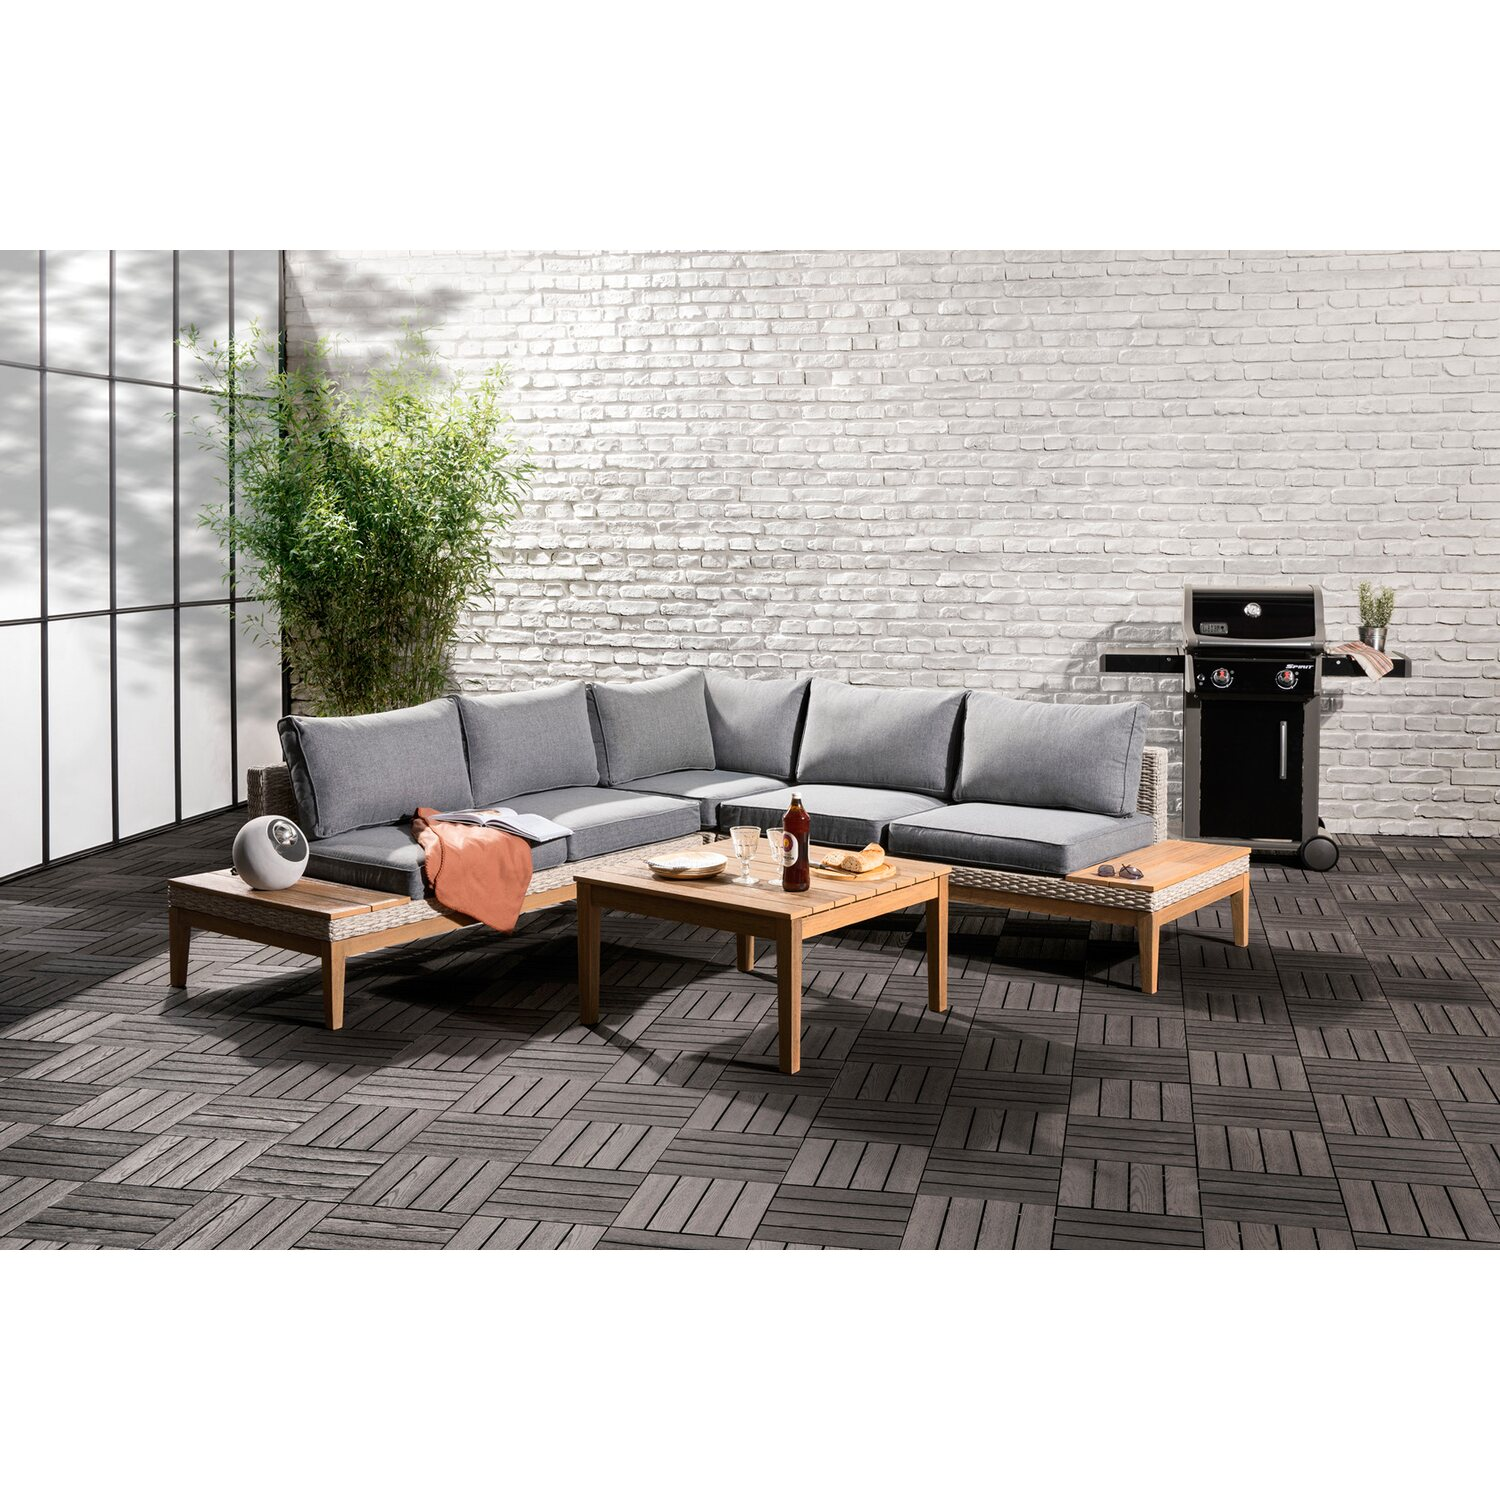 obi lounge gruppe hamerson fossil polyrattan eukalyptus 4 tlg kaufen bei obi. Black Bedroom Furniture Sets. Home Design Ideas